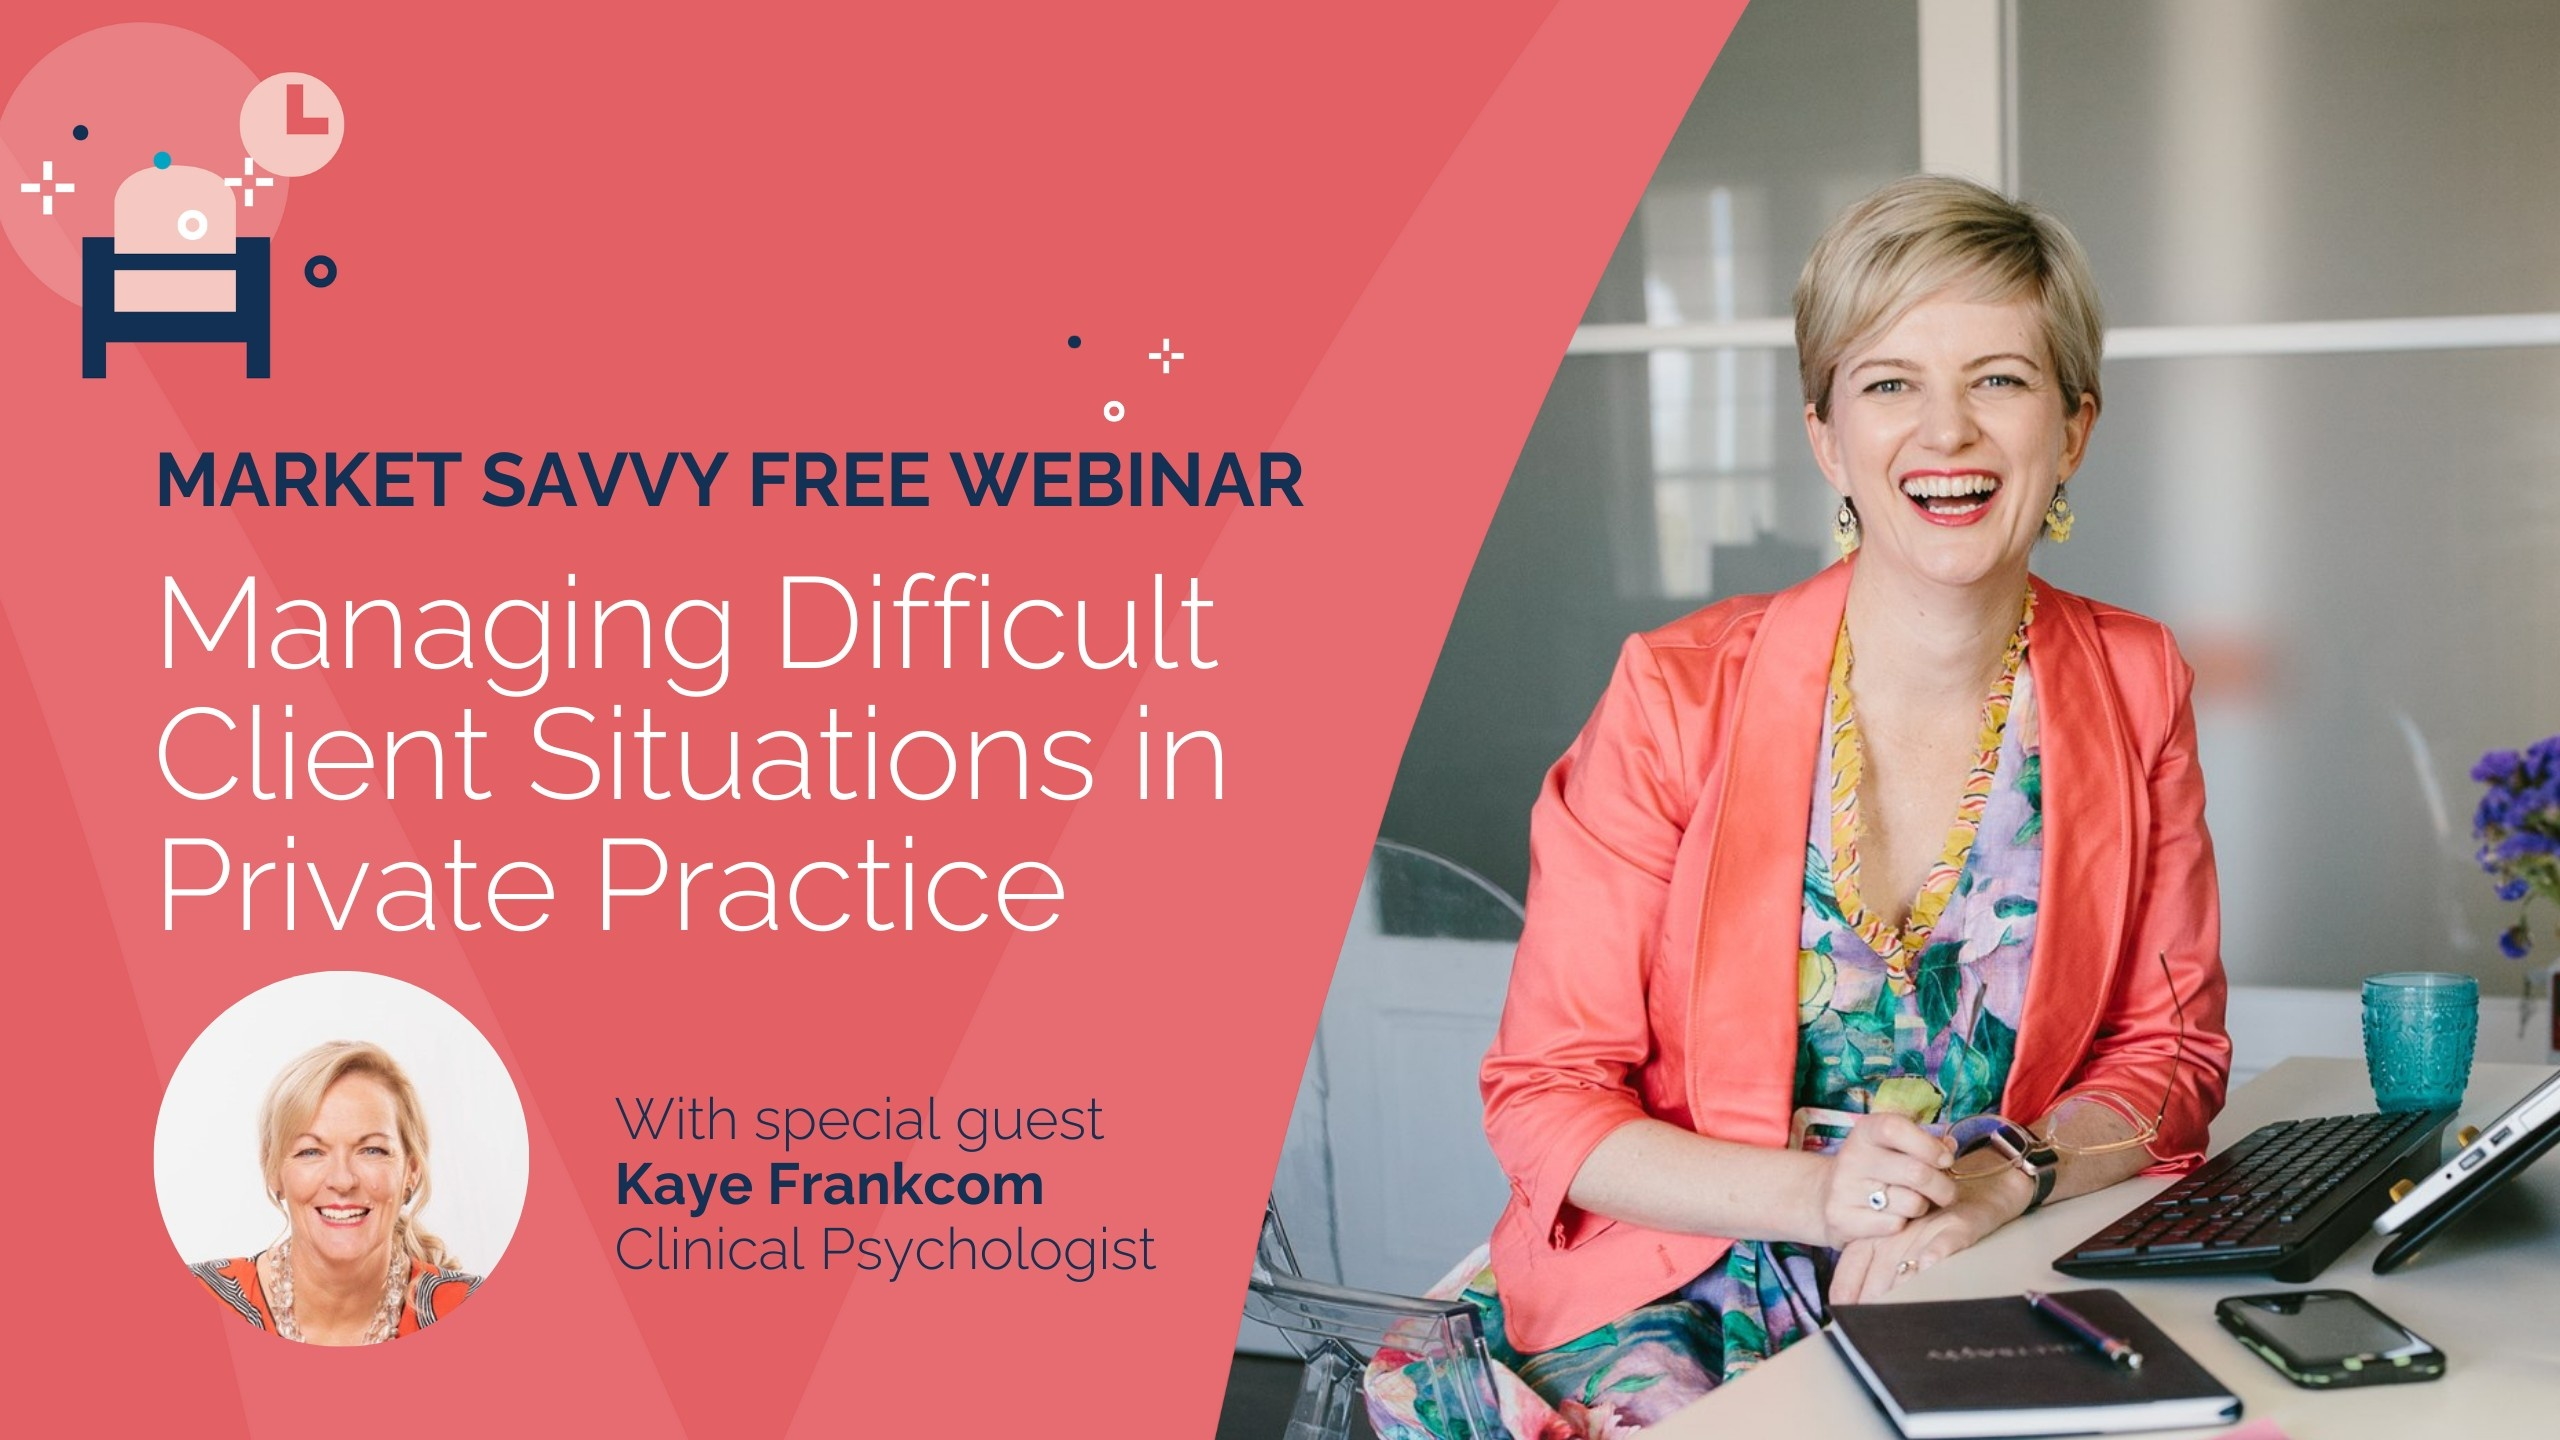 difficult client situations in private practice webinar kaye frankcom and megan walker market savvy